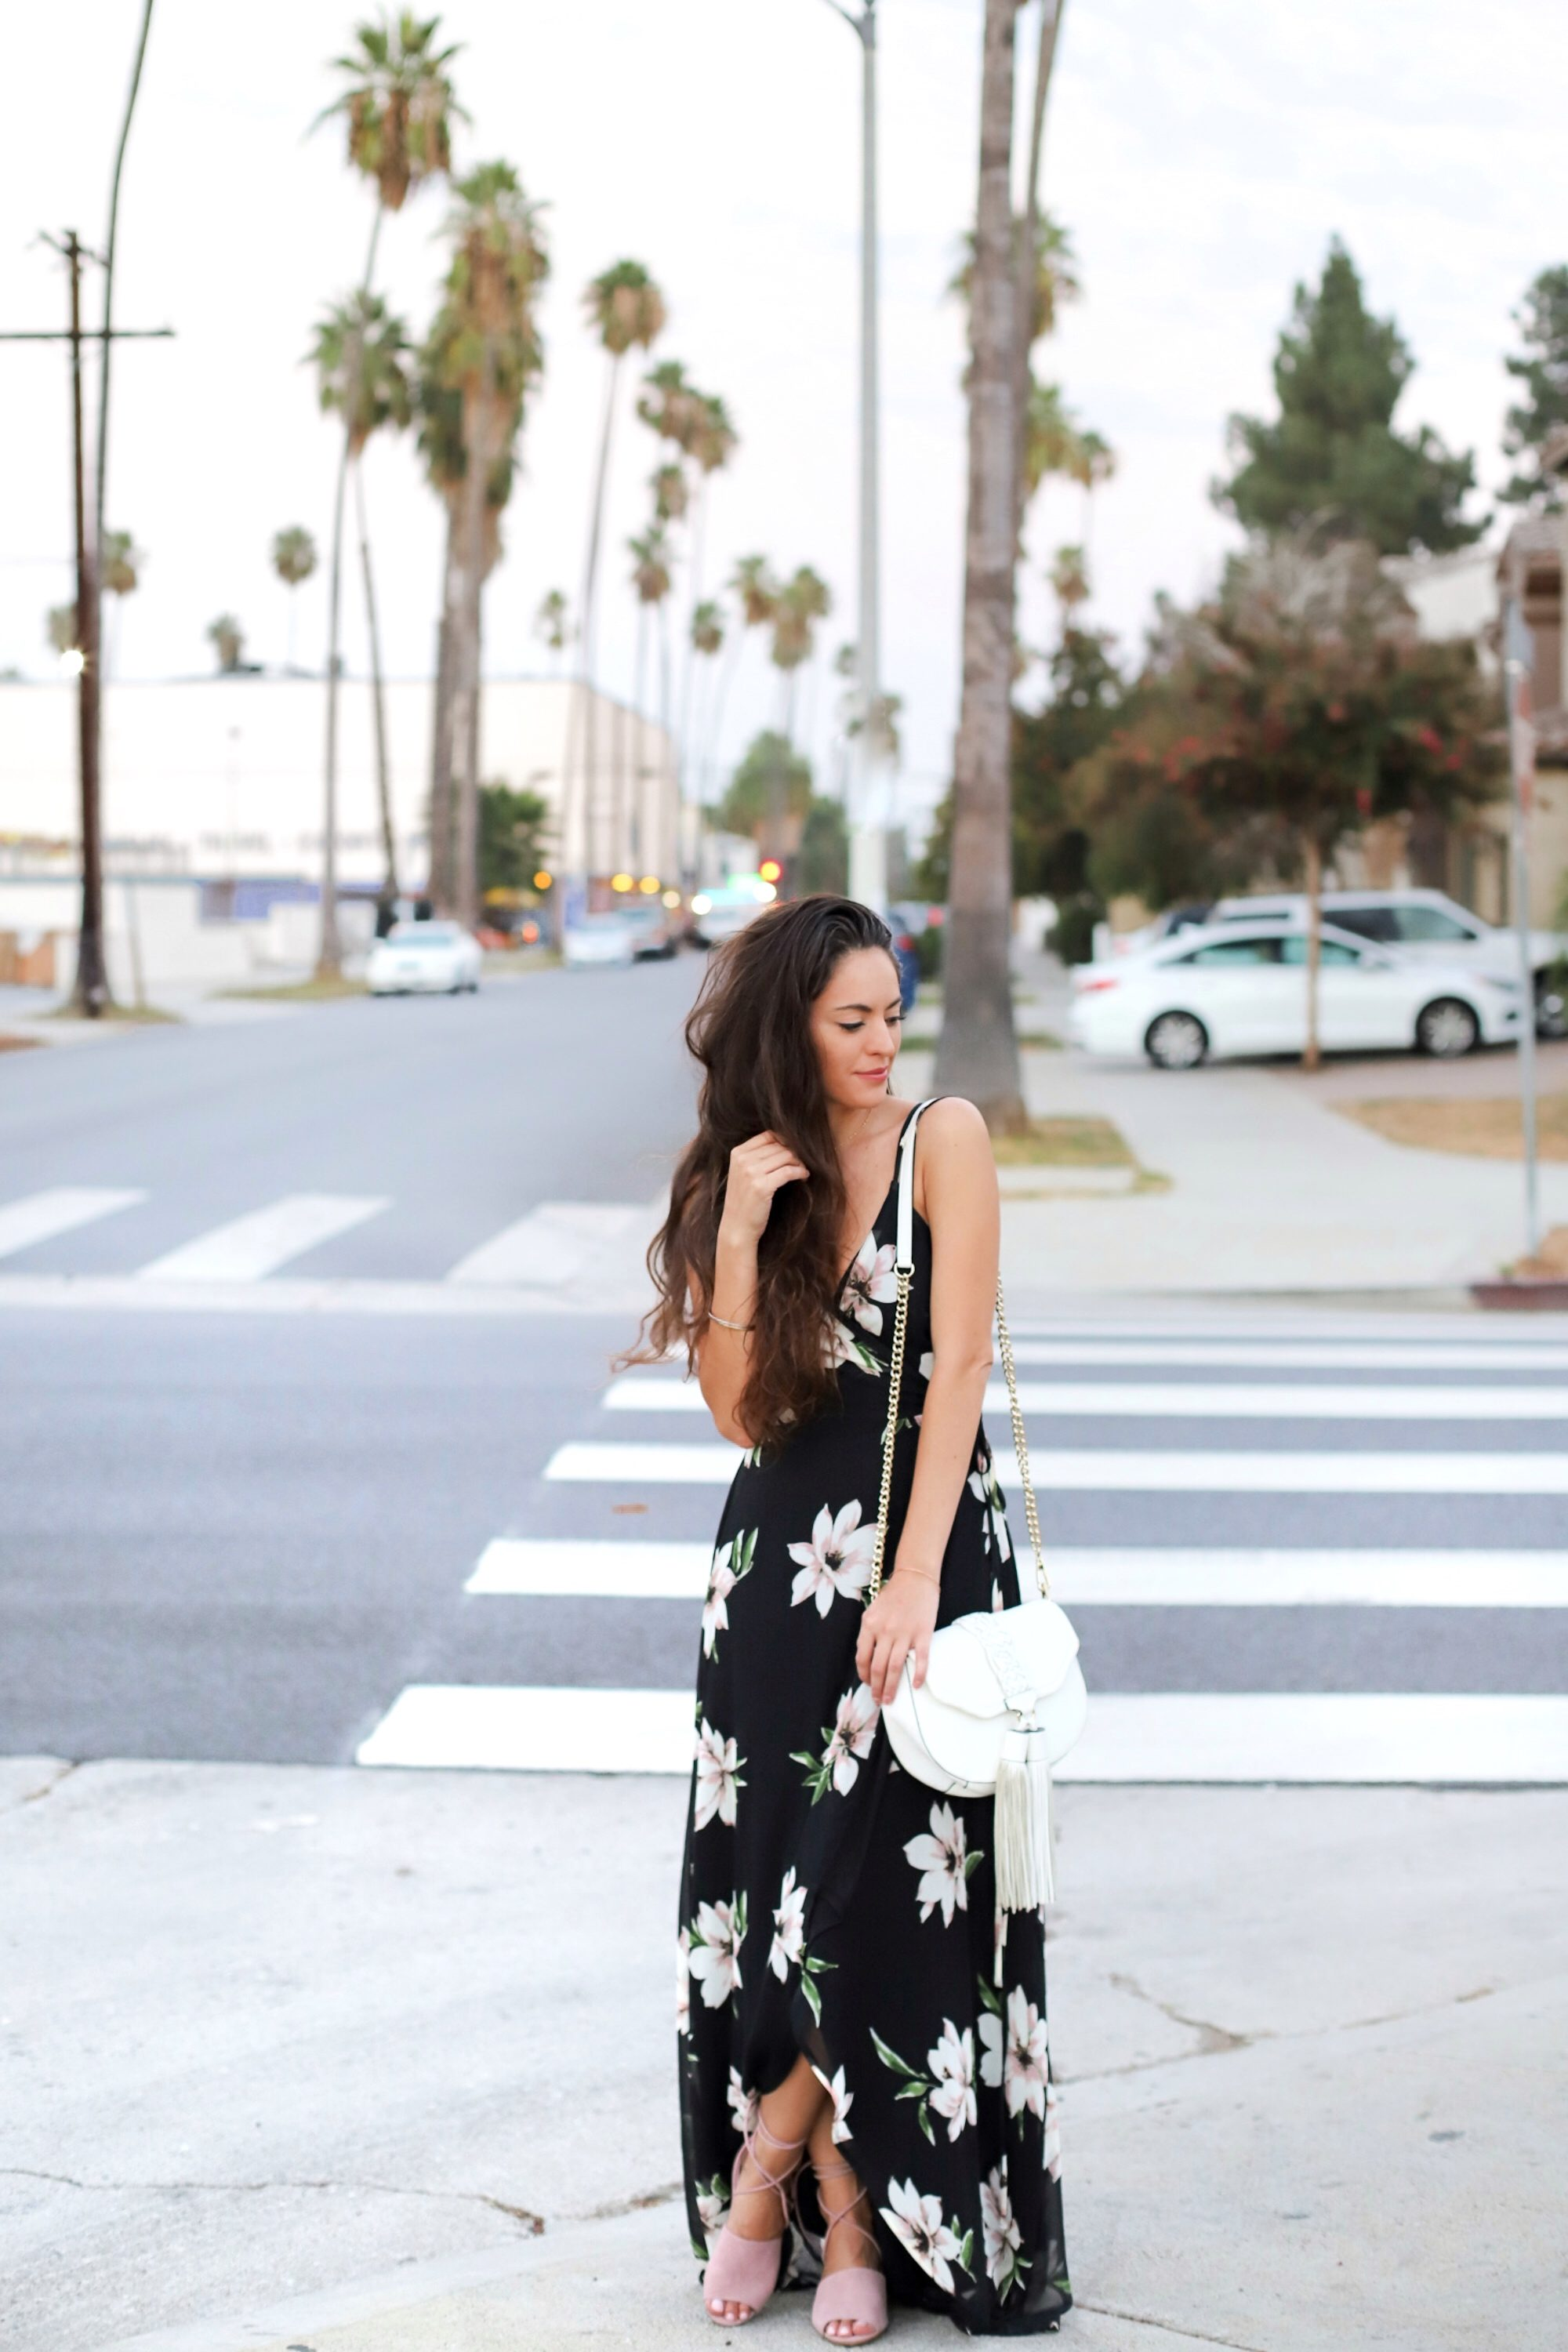 black and pink maxi, black maxi dress, black floral maxi dress, summer to fall outfit ideas, summer style, summer outfit ideas, fall wedding outfit ideas, Los Angeles, how to wear maxi dress for fall